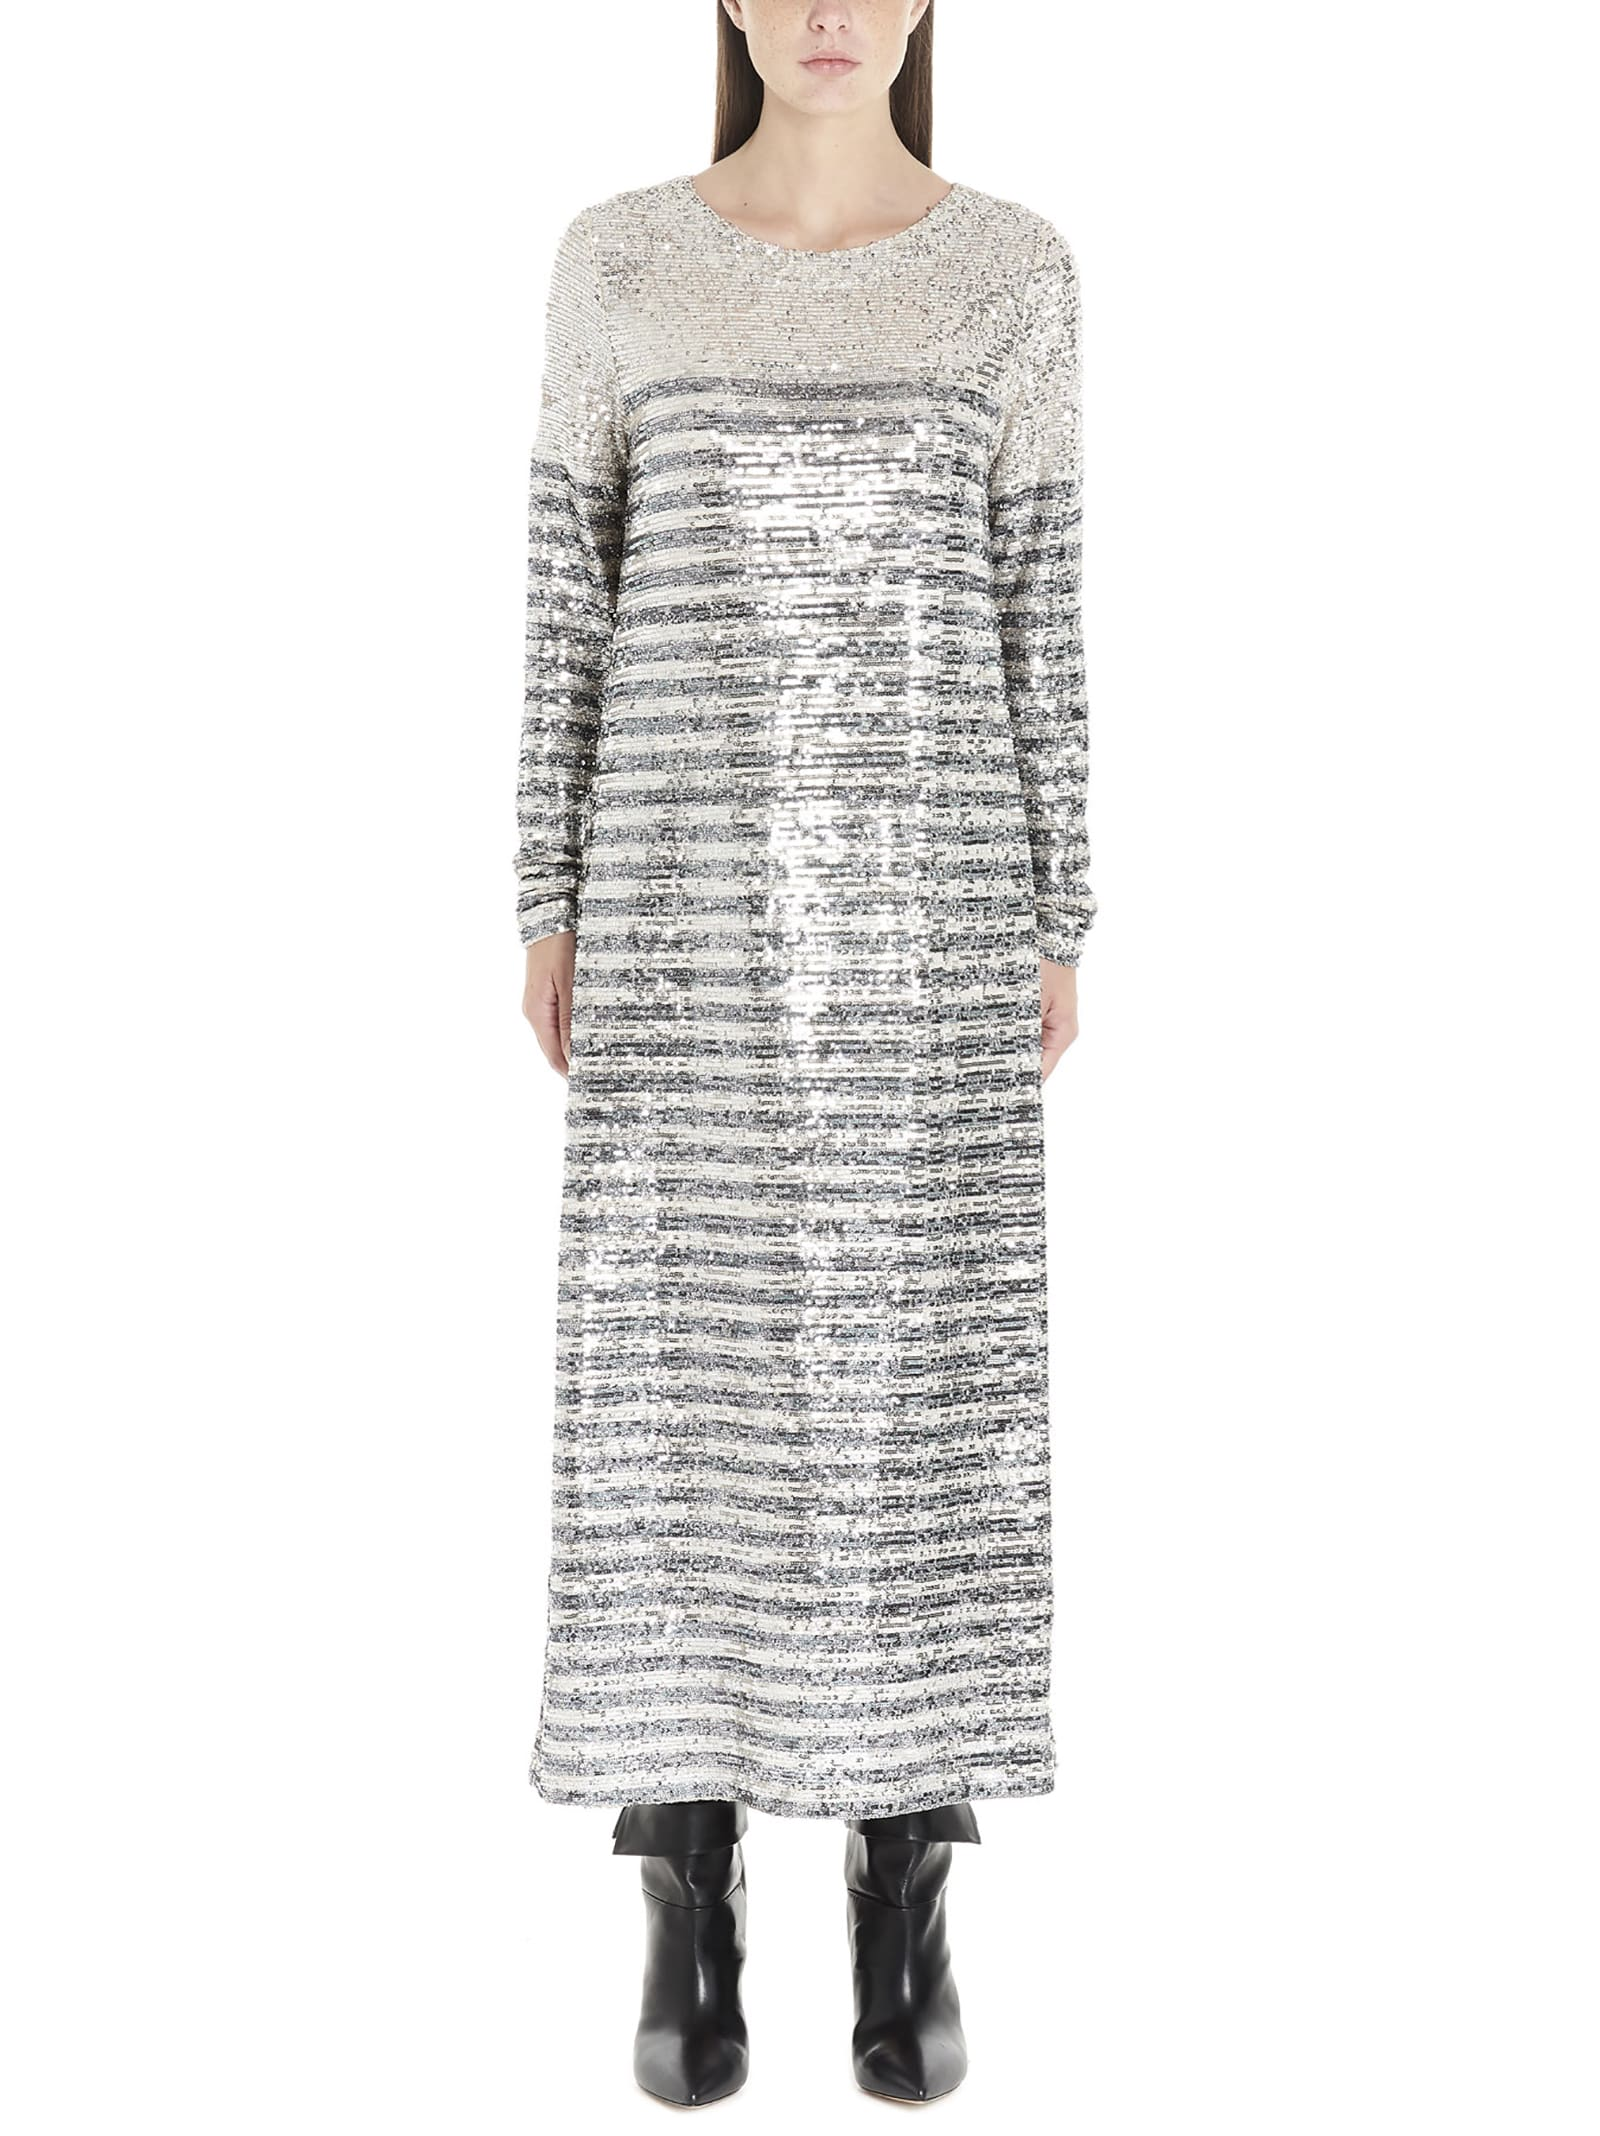 In The Mood For Love beth Dress Dress